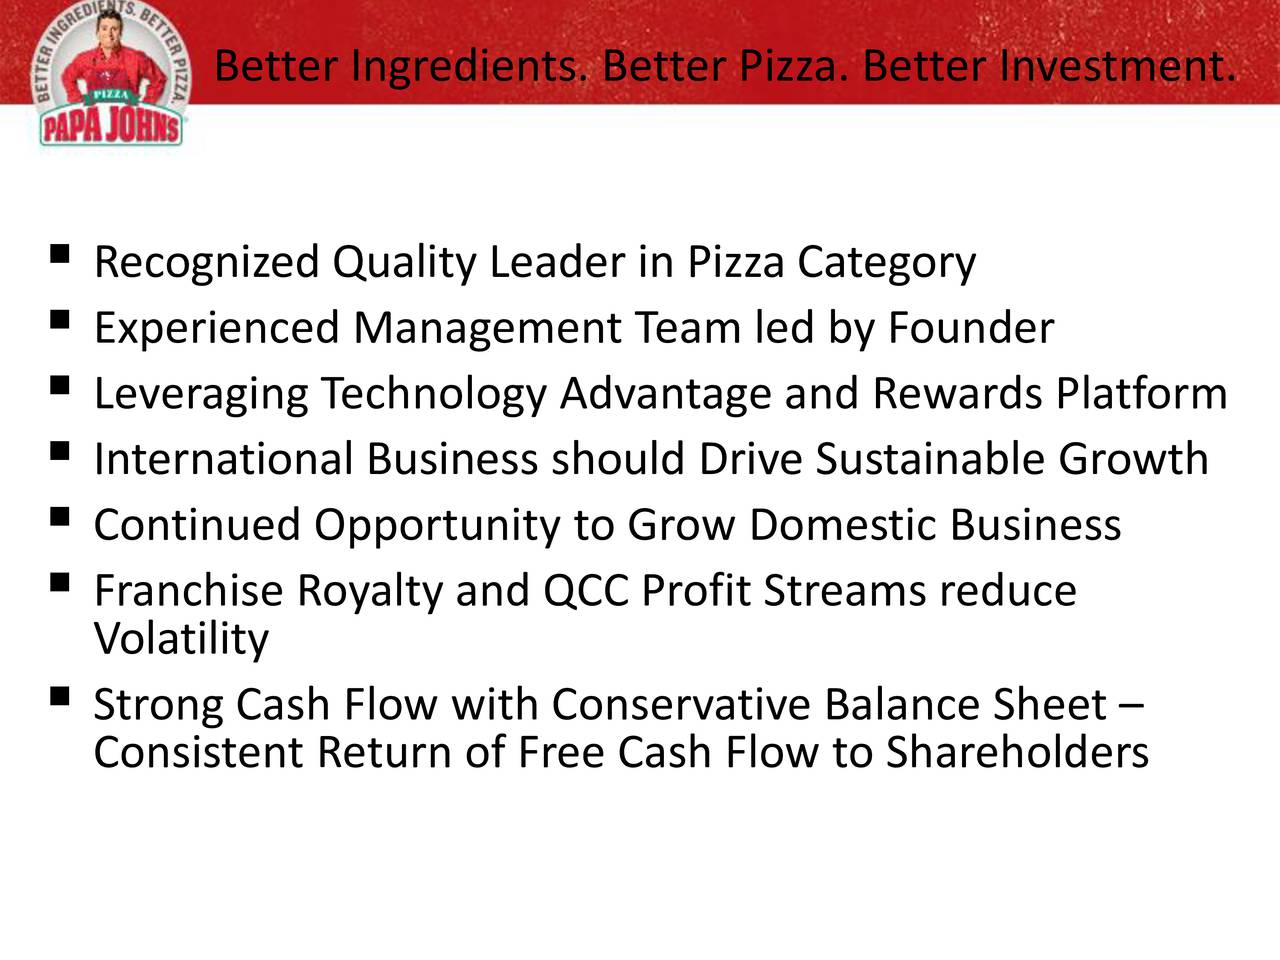 Recognized Quality Leader in Pizza Category Experienced Management Team led by Founder Leveraging Technology Advantage and Rewards Platform International Business should Drive Sustainable Growth Continued Opportunity to Grow Domestic Business Franchise Royalty and QCC Profit Streams reduce Volatility Strong Cash Flow with Conservative Balance Sheet Consistent Return of Free Cash Flow to Shareholders